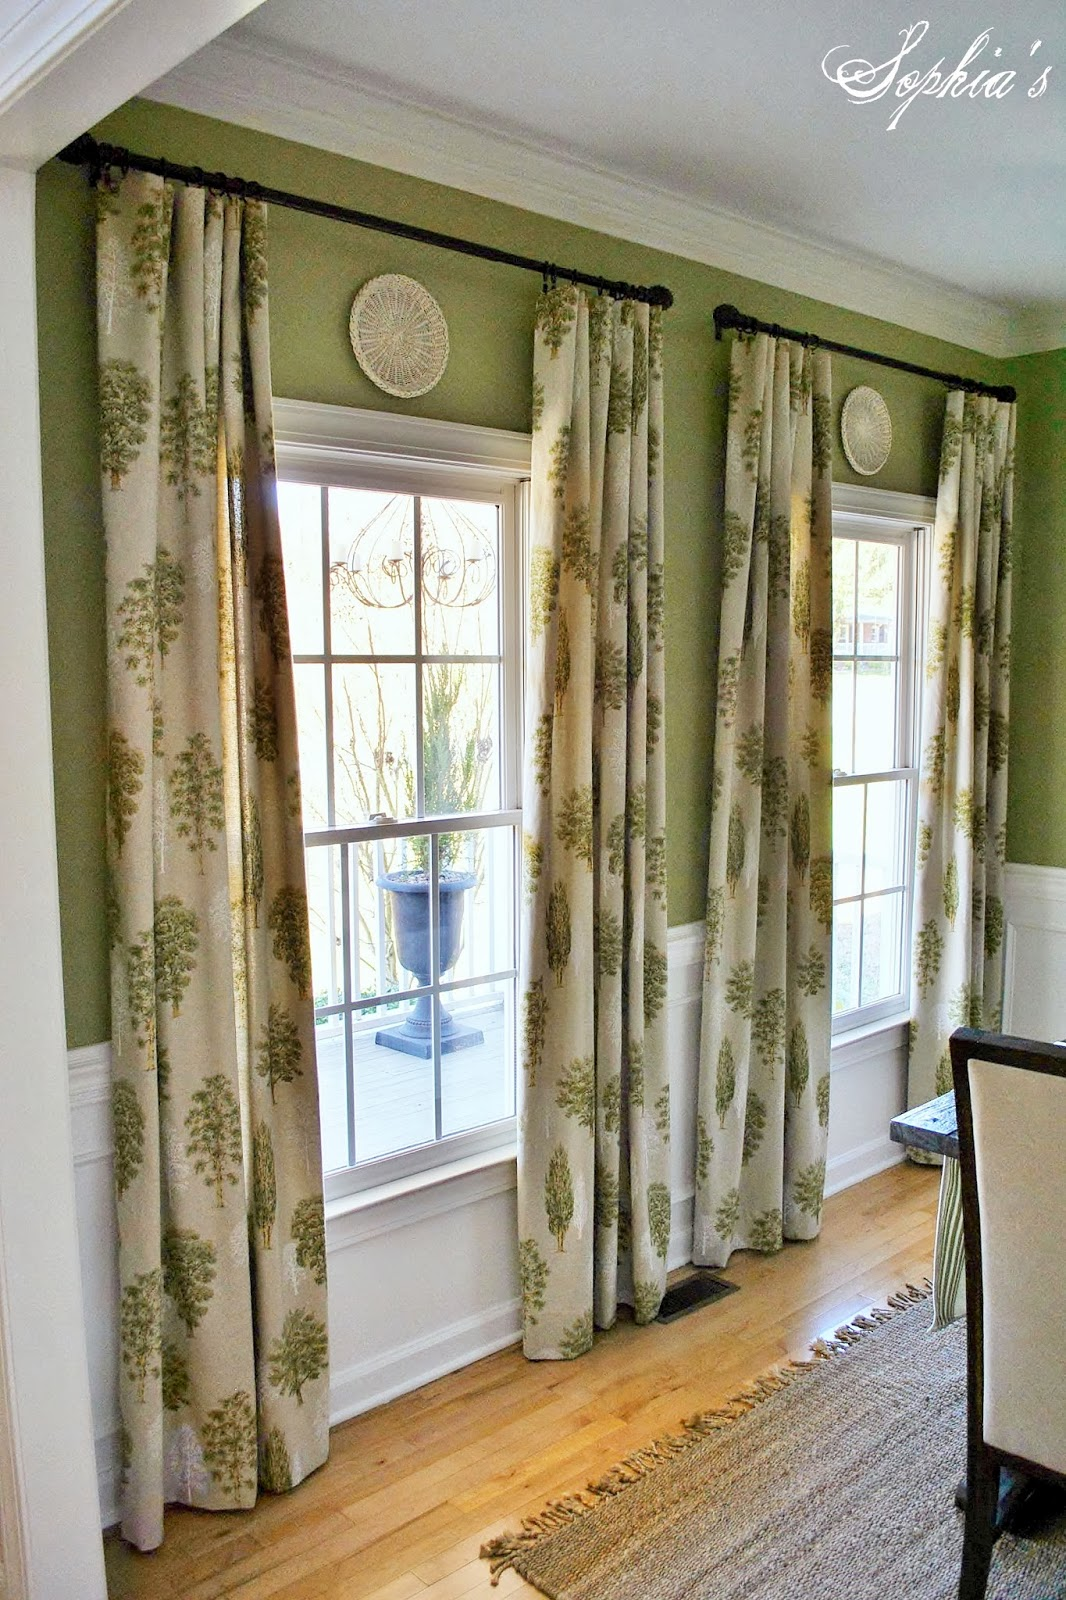 dining room curtain designs | Sophia's: Details in the Dining Room